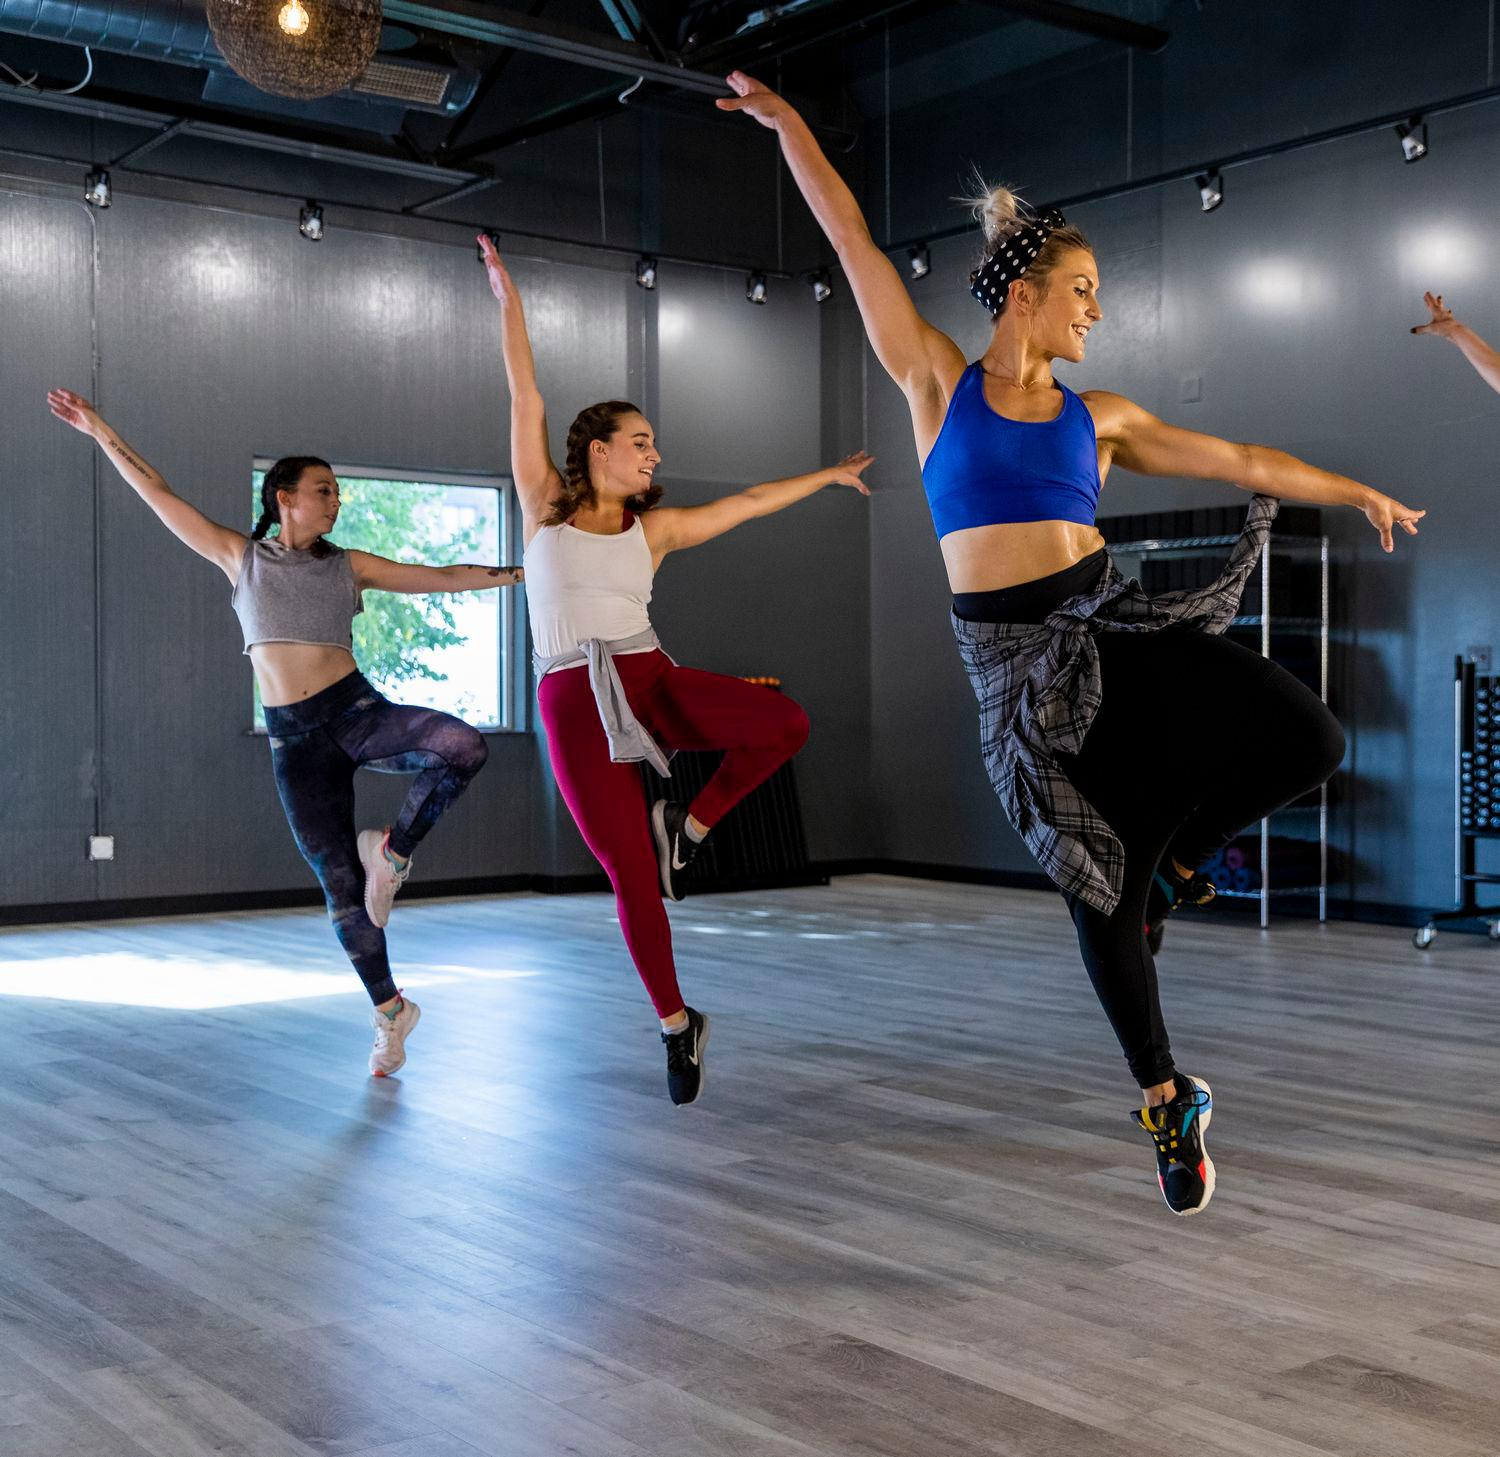 Dance your way to a healthy lifestyle with studio dance classes at Chicago Athletic Clubs!